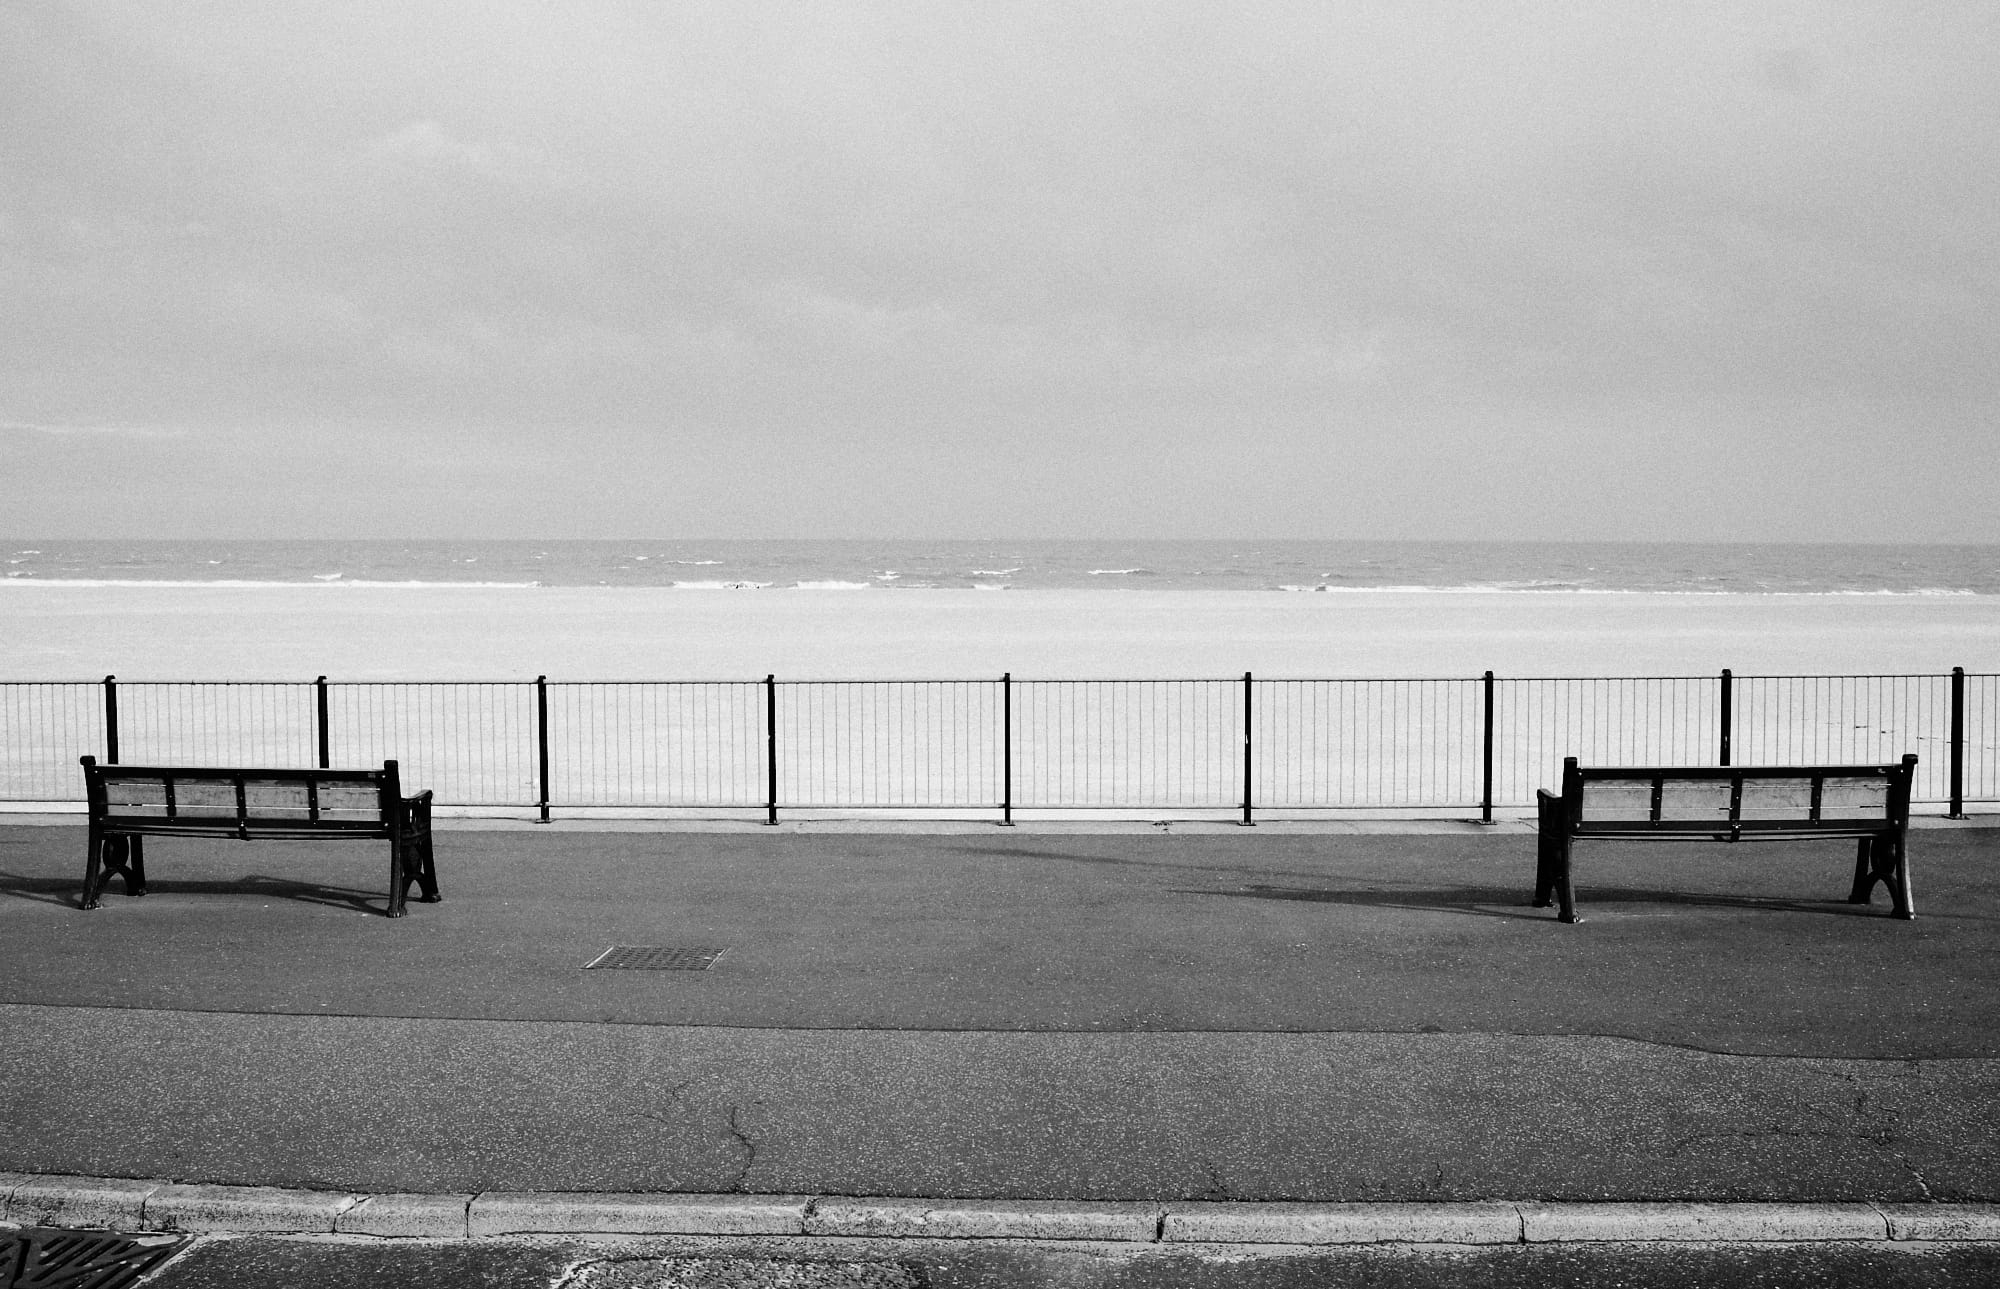 lower level promenade benches facing out to sea